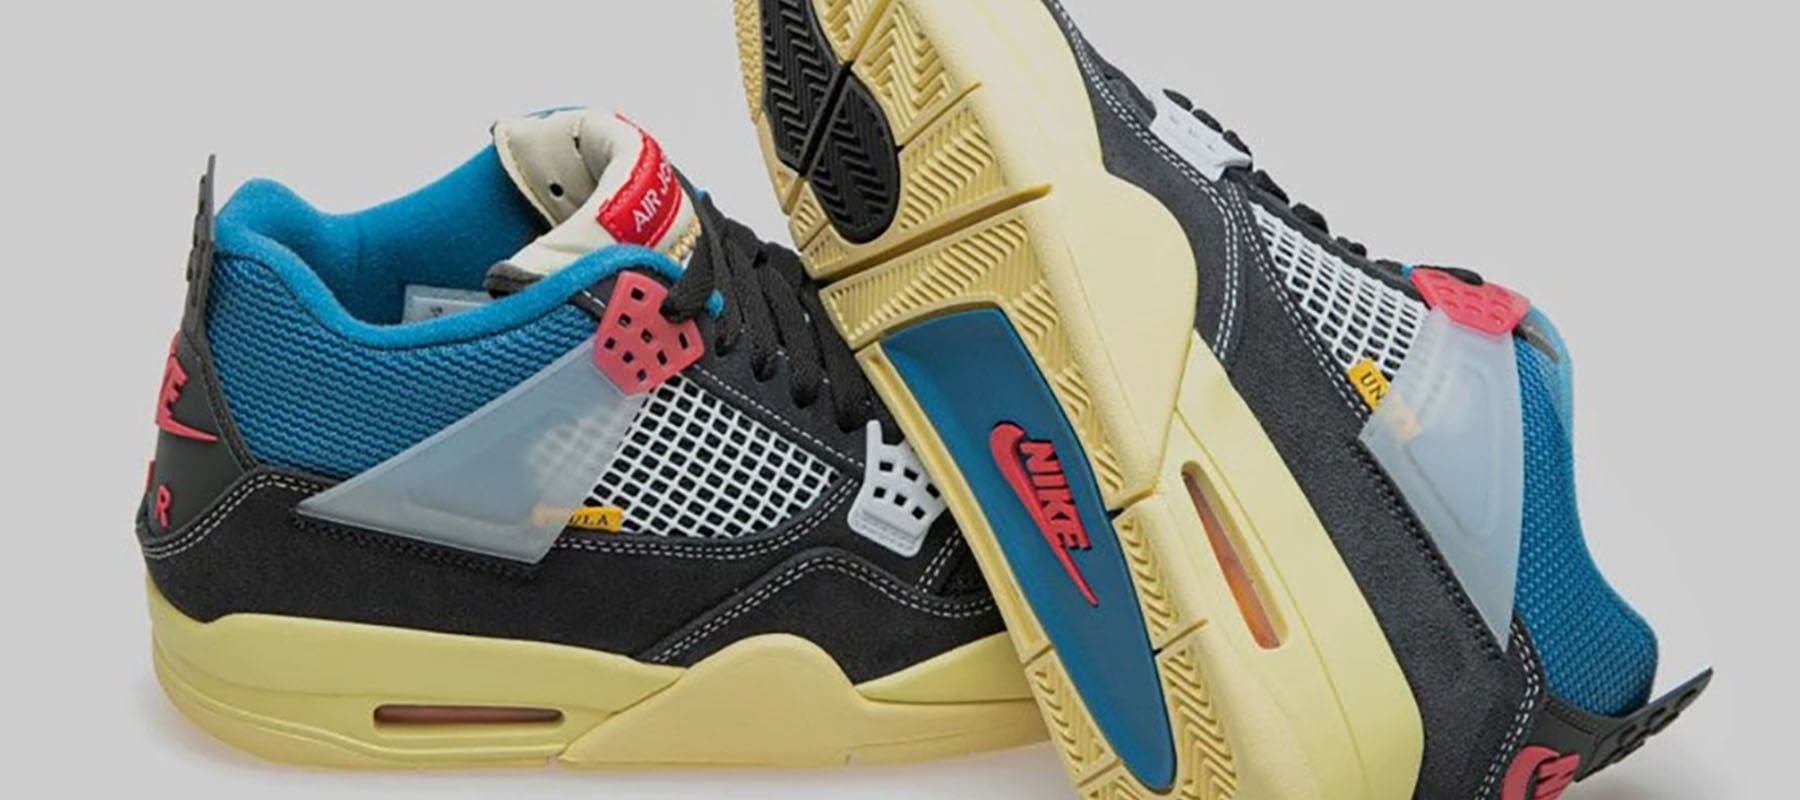 Air Jordan 4 x Union Los Angeles Sneakers News